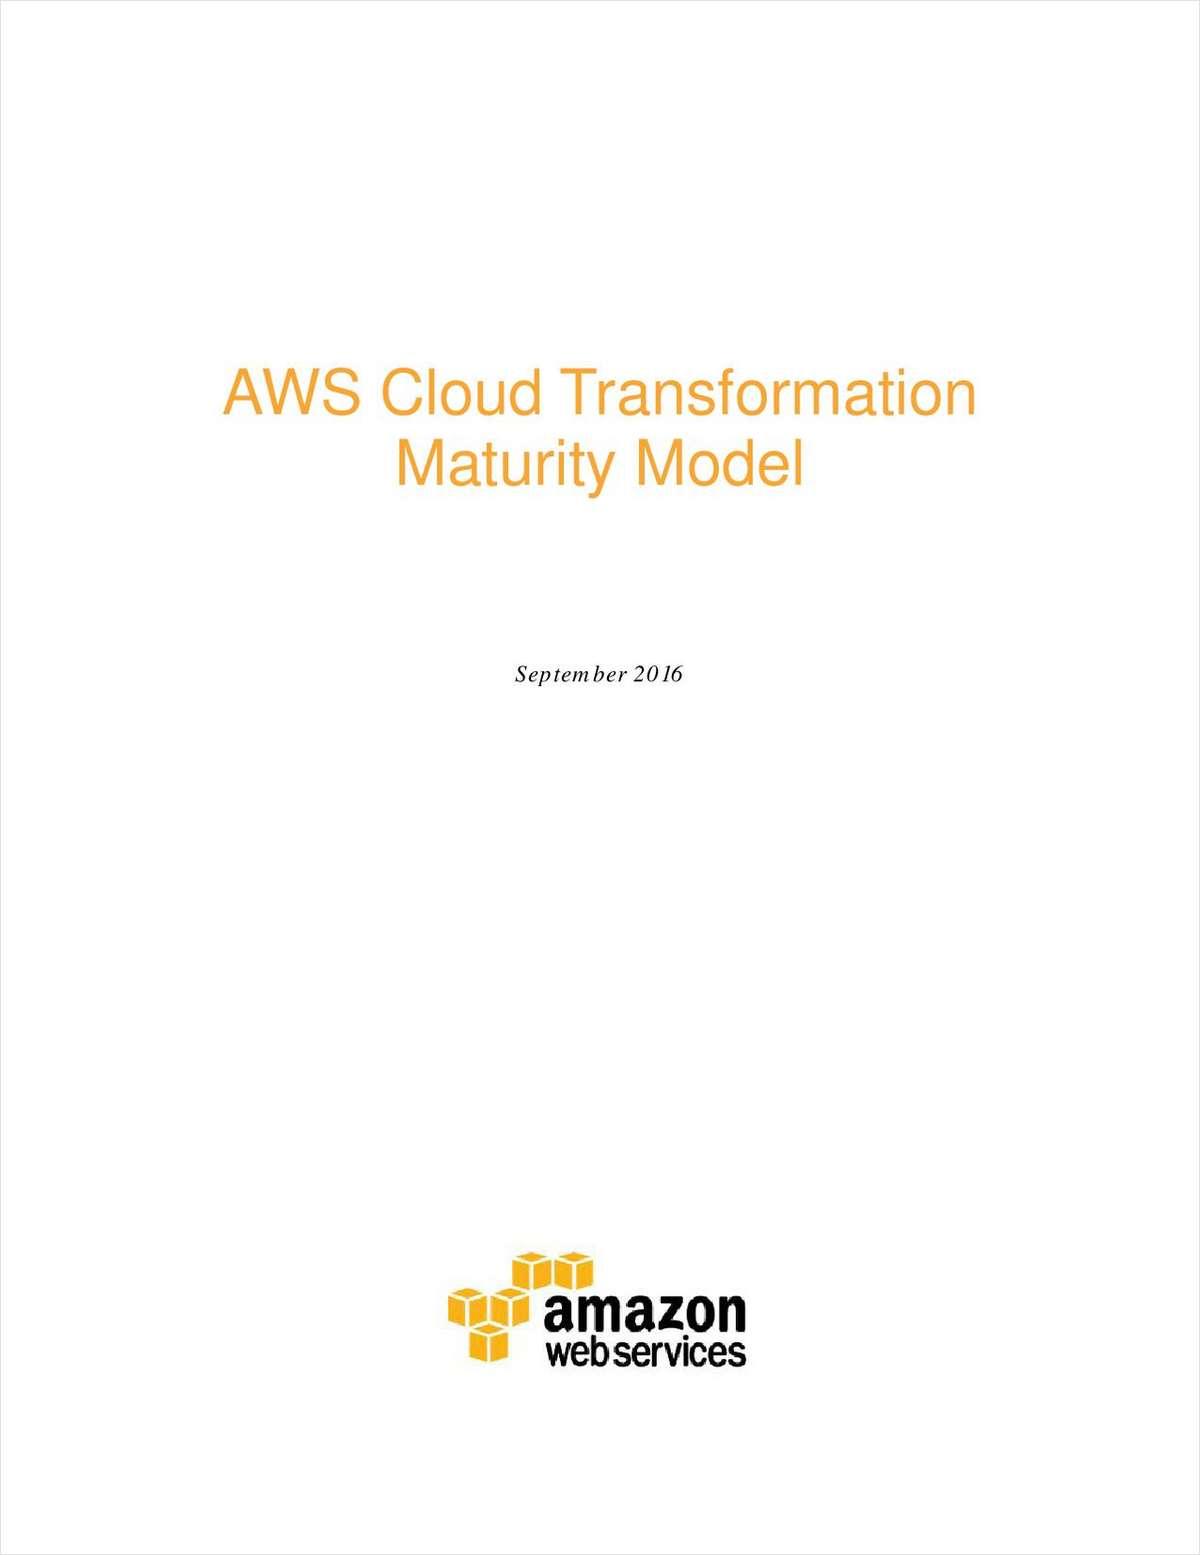 AWS Cloud Transformation Maturity Model